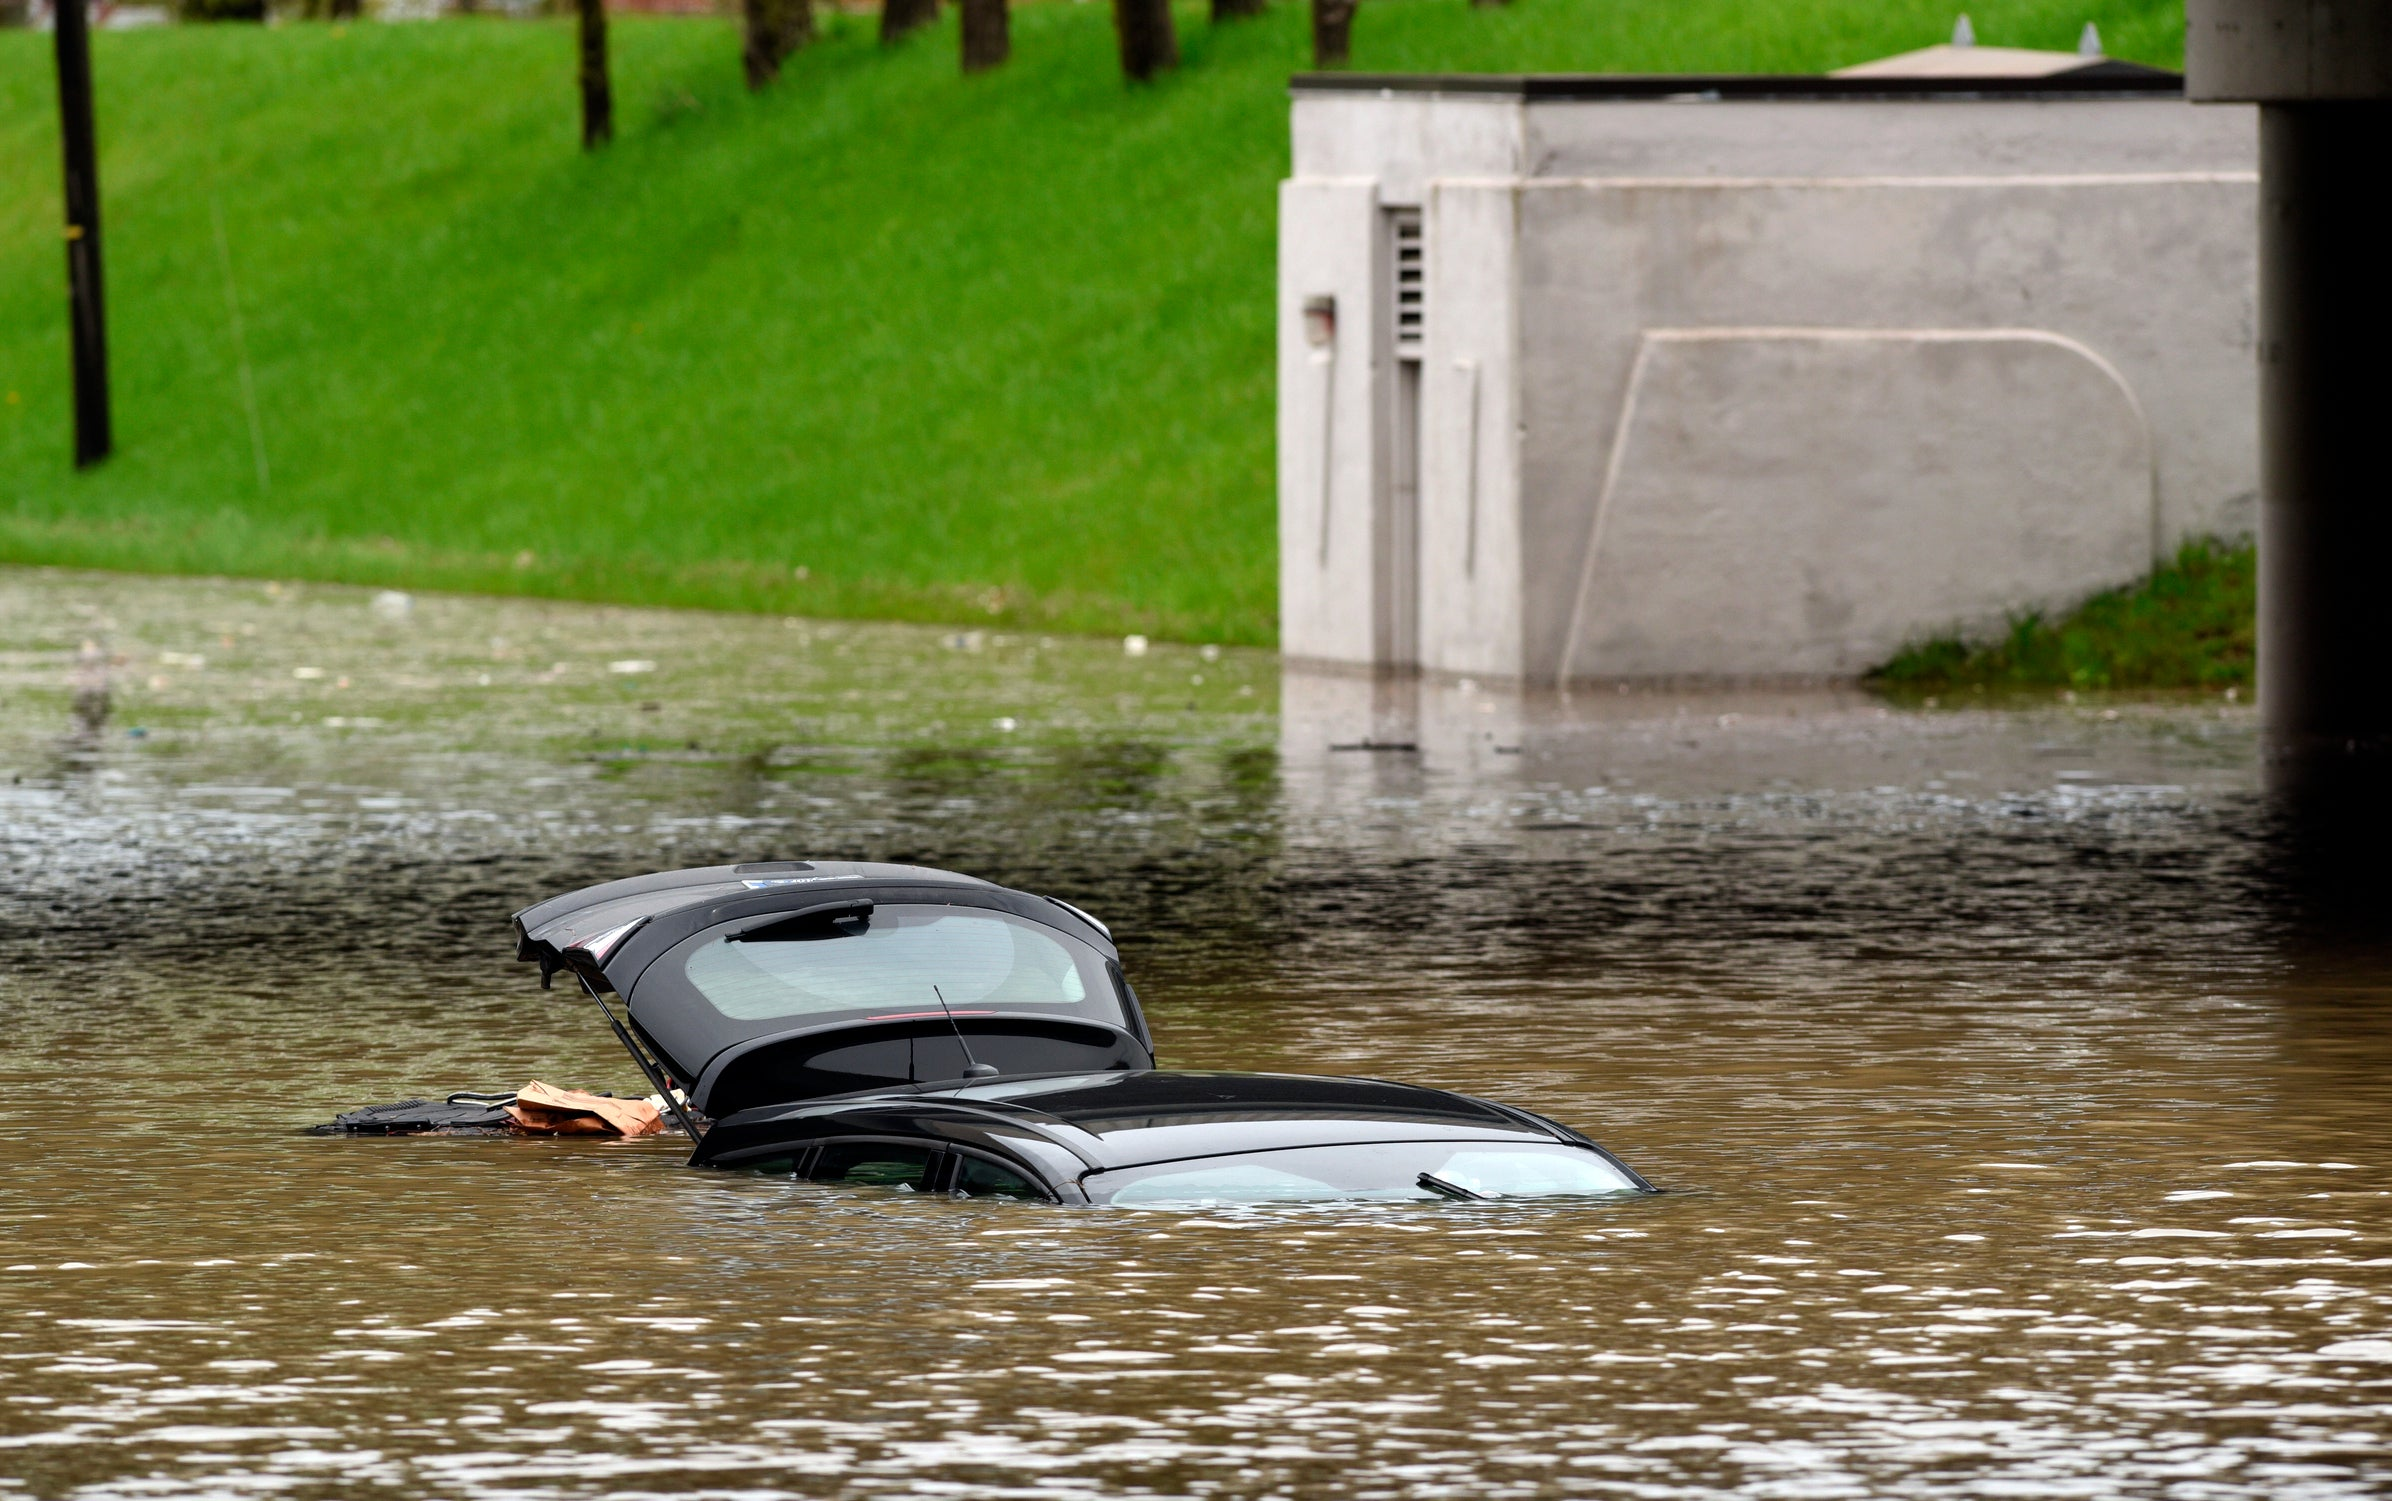 The roof and open hatch are the only visible signs of a vehicle submerged in floodwaters at the Monroe Blvd underpass at the Interstate 94 in Taylor, Mich., Wednesday, May 1, 2019. Overnight rain across the Detroit area lefts scores of basements flooded and made some local streets impassable. Some vehicles had to be towed from the water. (Max Ortiz/Detroit News via AP)